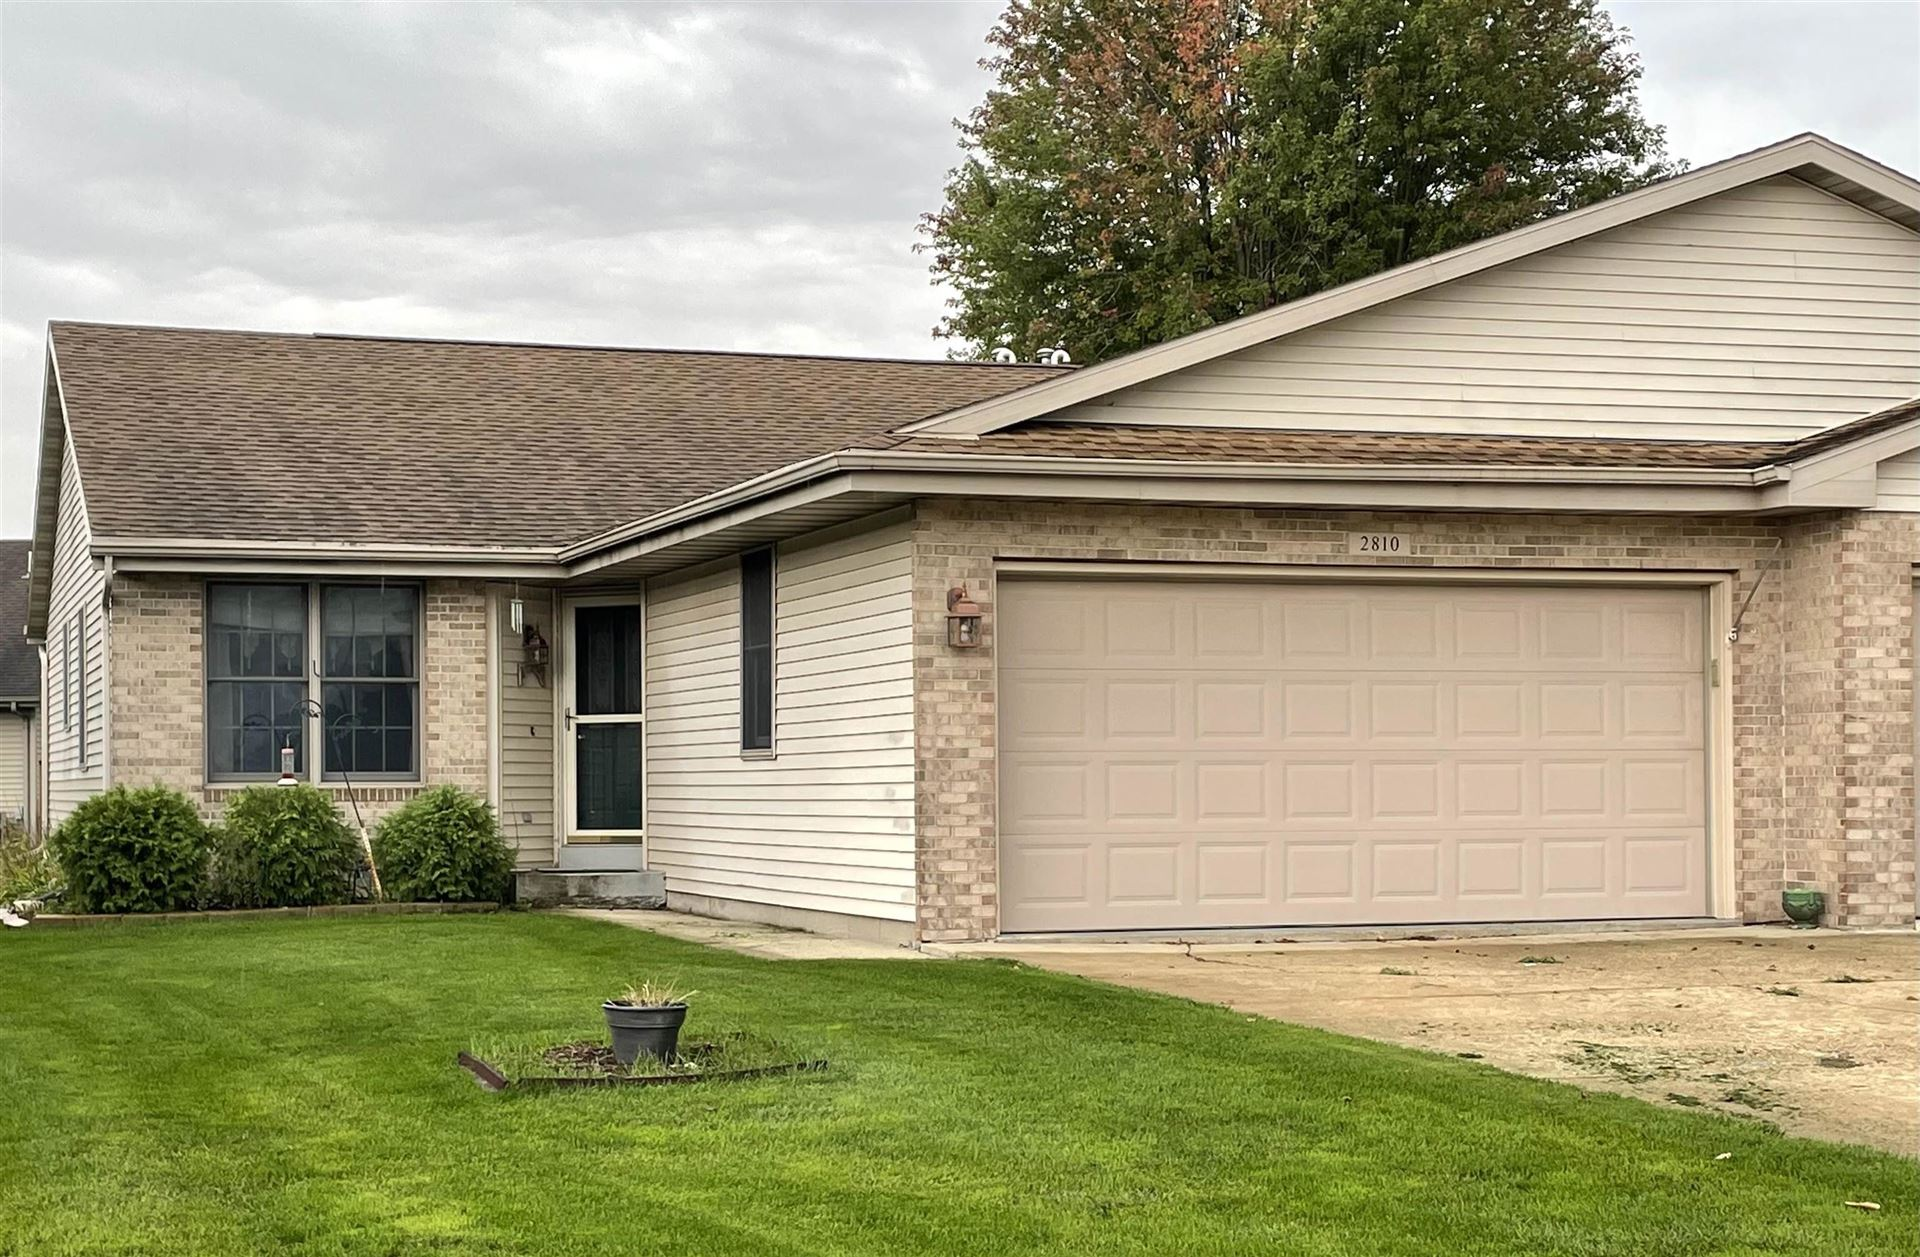 2810 Holiday Dr, Janesville, WI 53545-0652 - #: 1921851